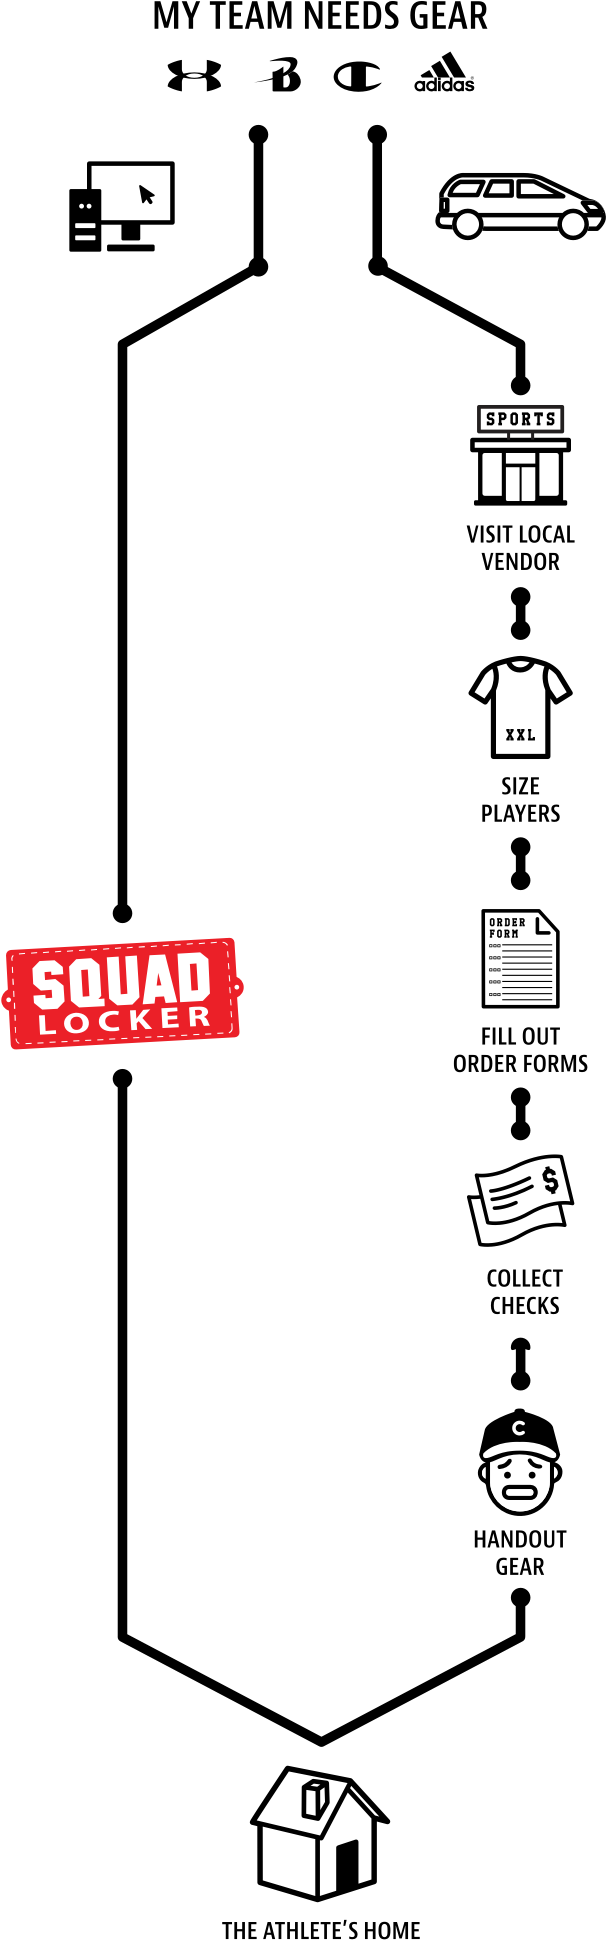 Squadlocker coupon code